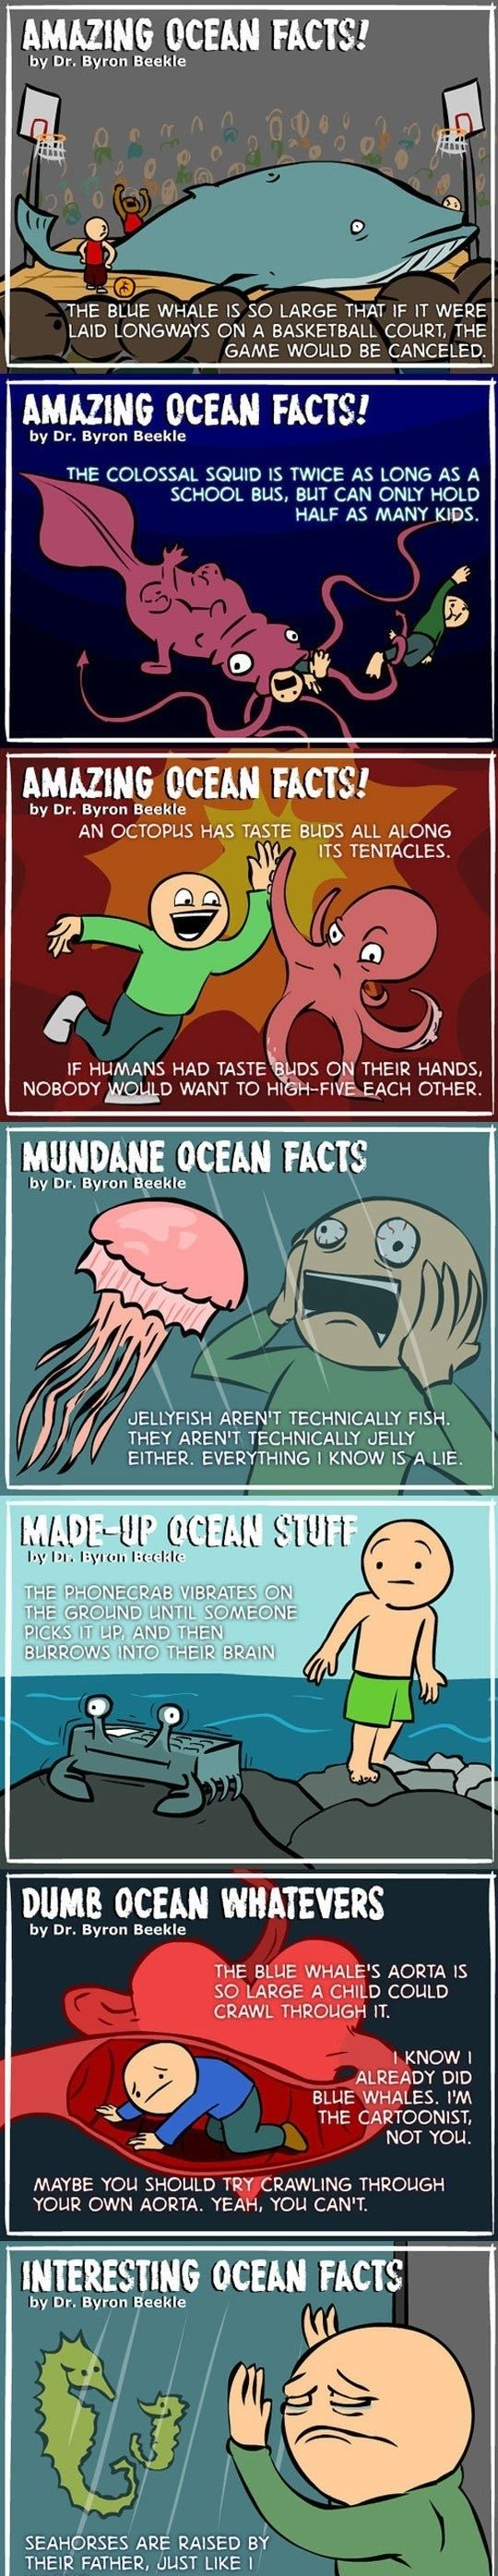 Crazy Ocean Facts You Probably Don't Know